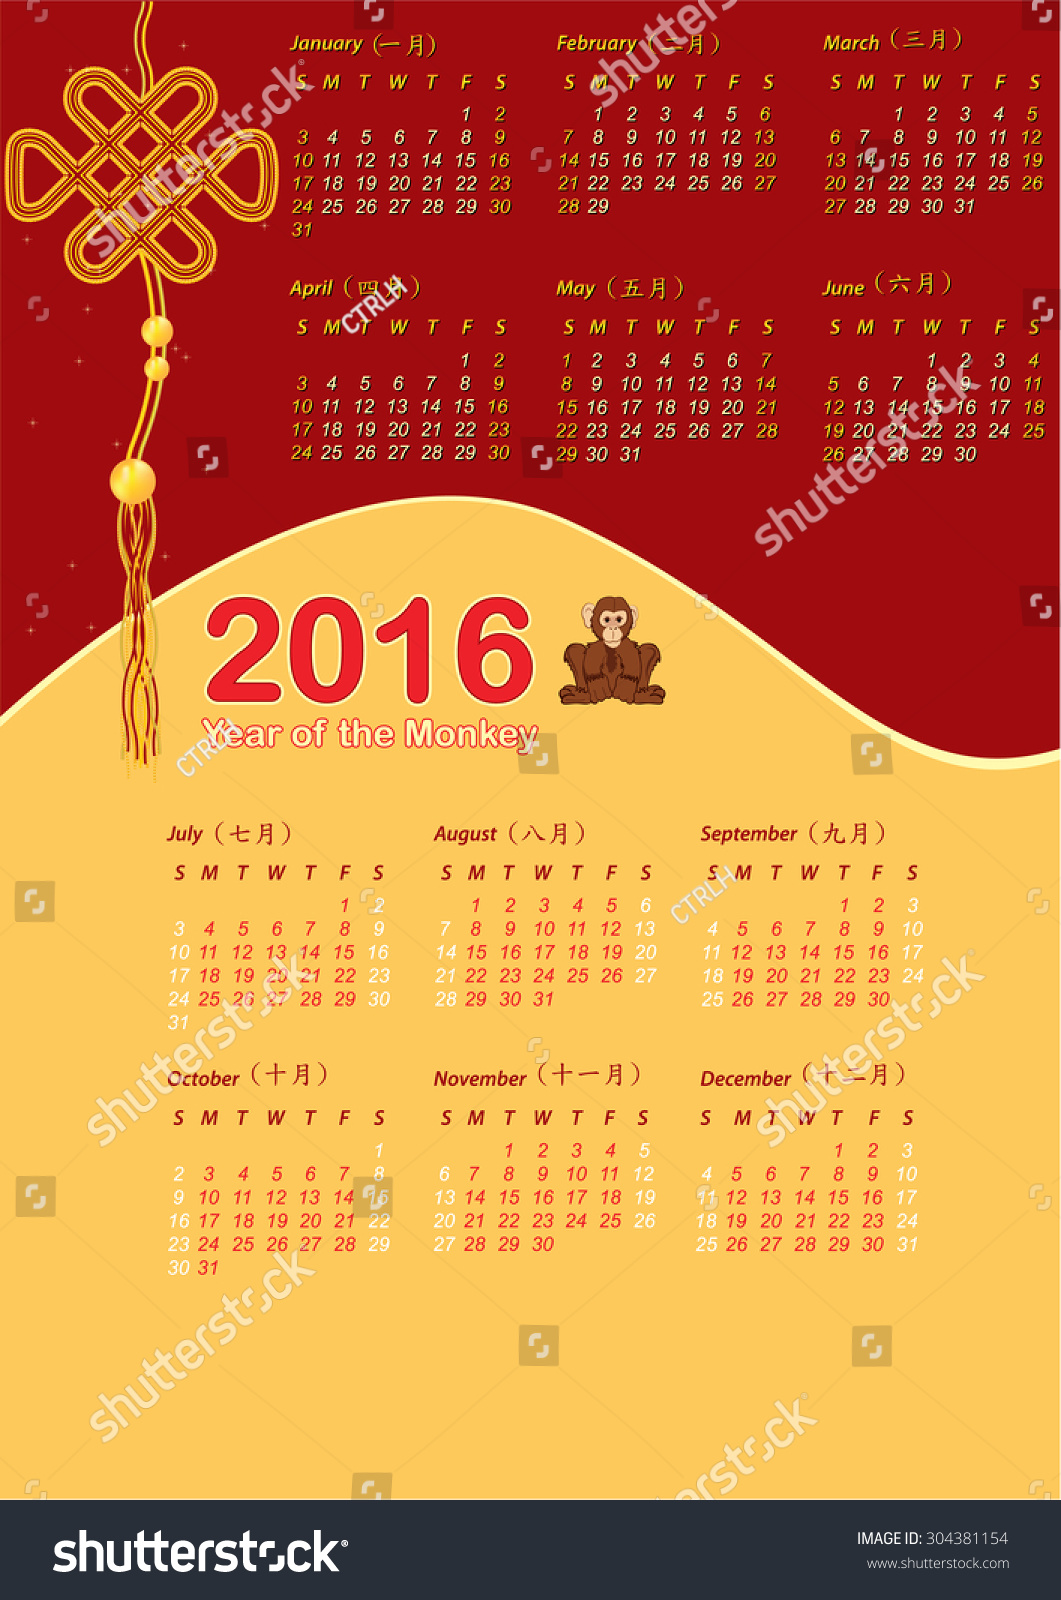 chinese year of the monkey calendar 2016 the calendar contains traditional elements for the - Chinese New Year 2016 Calendar